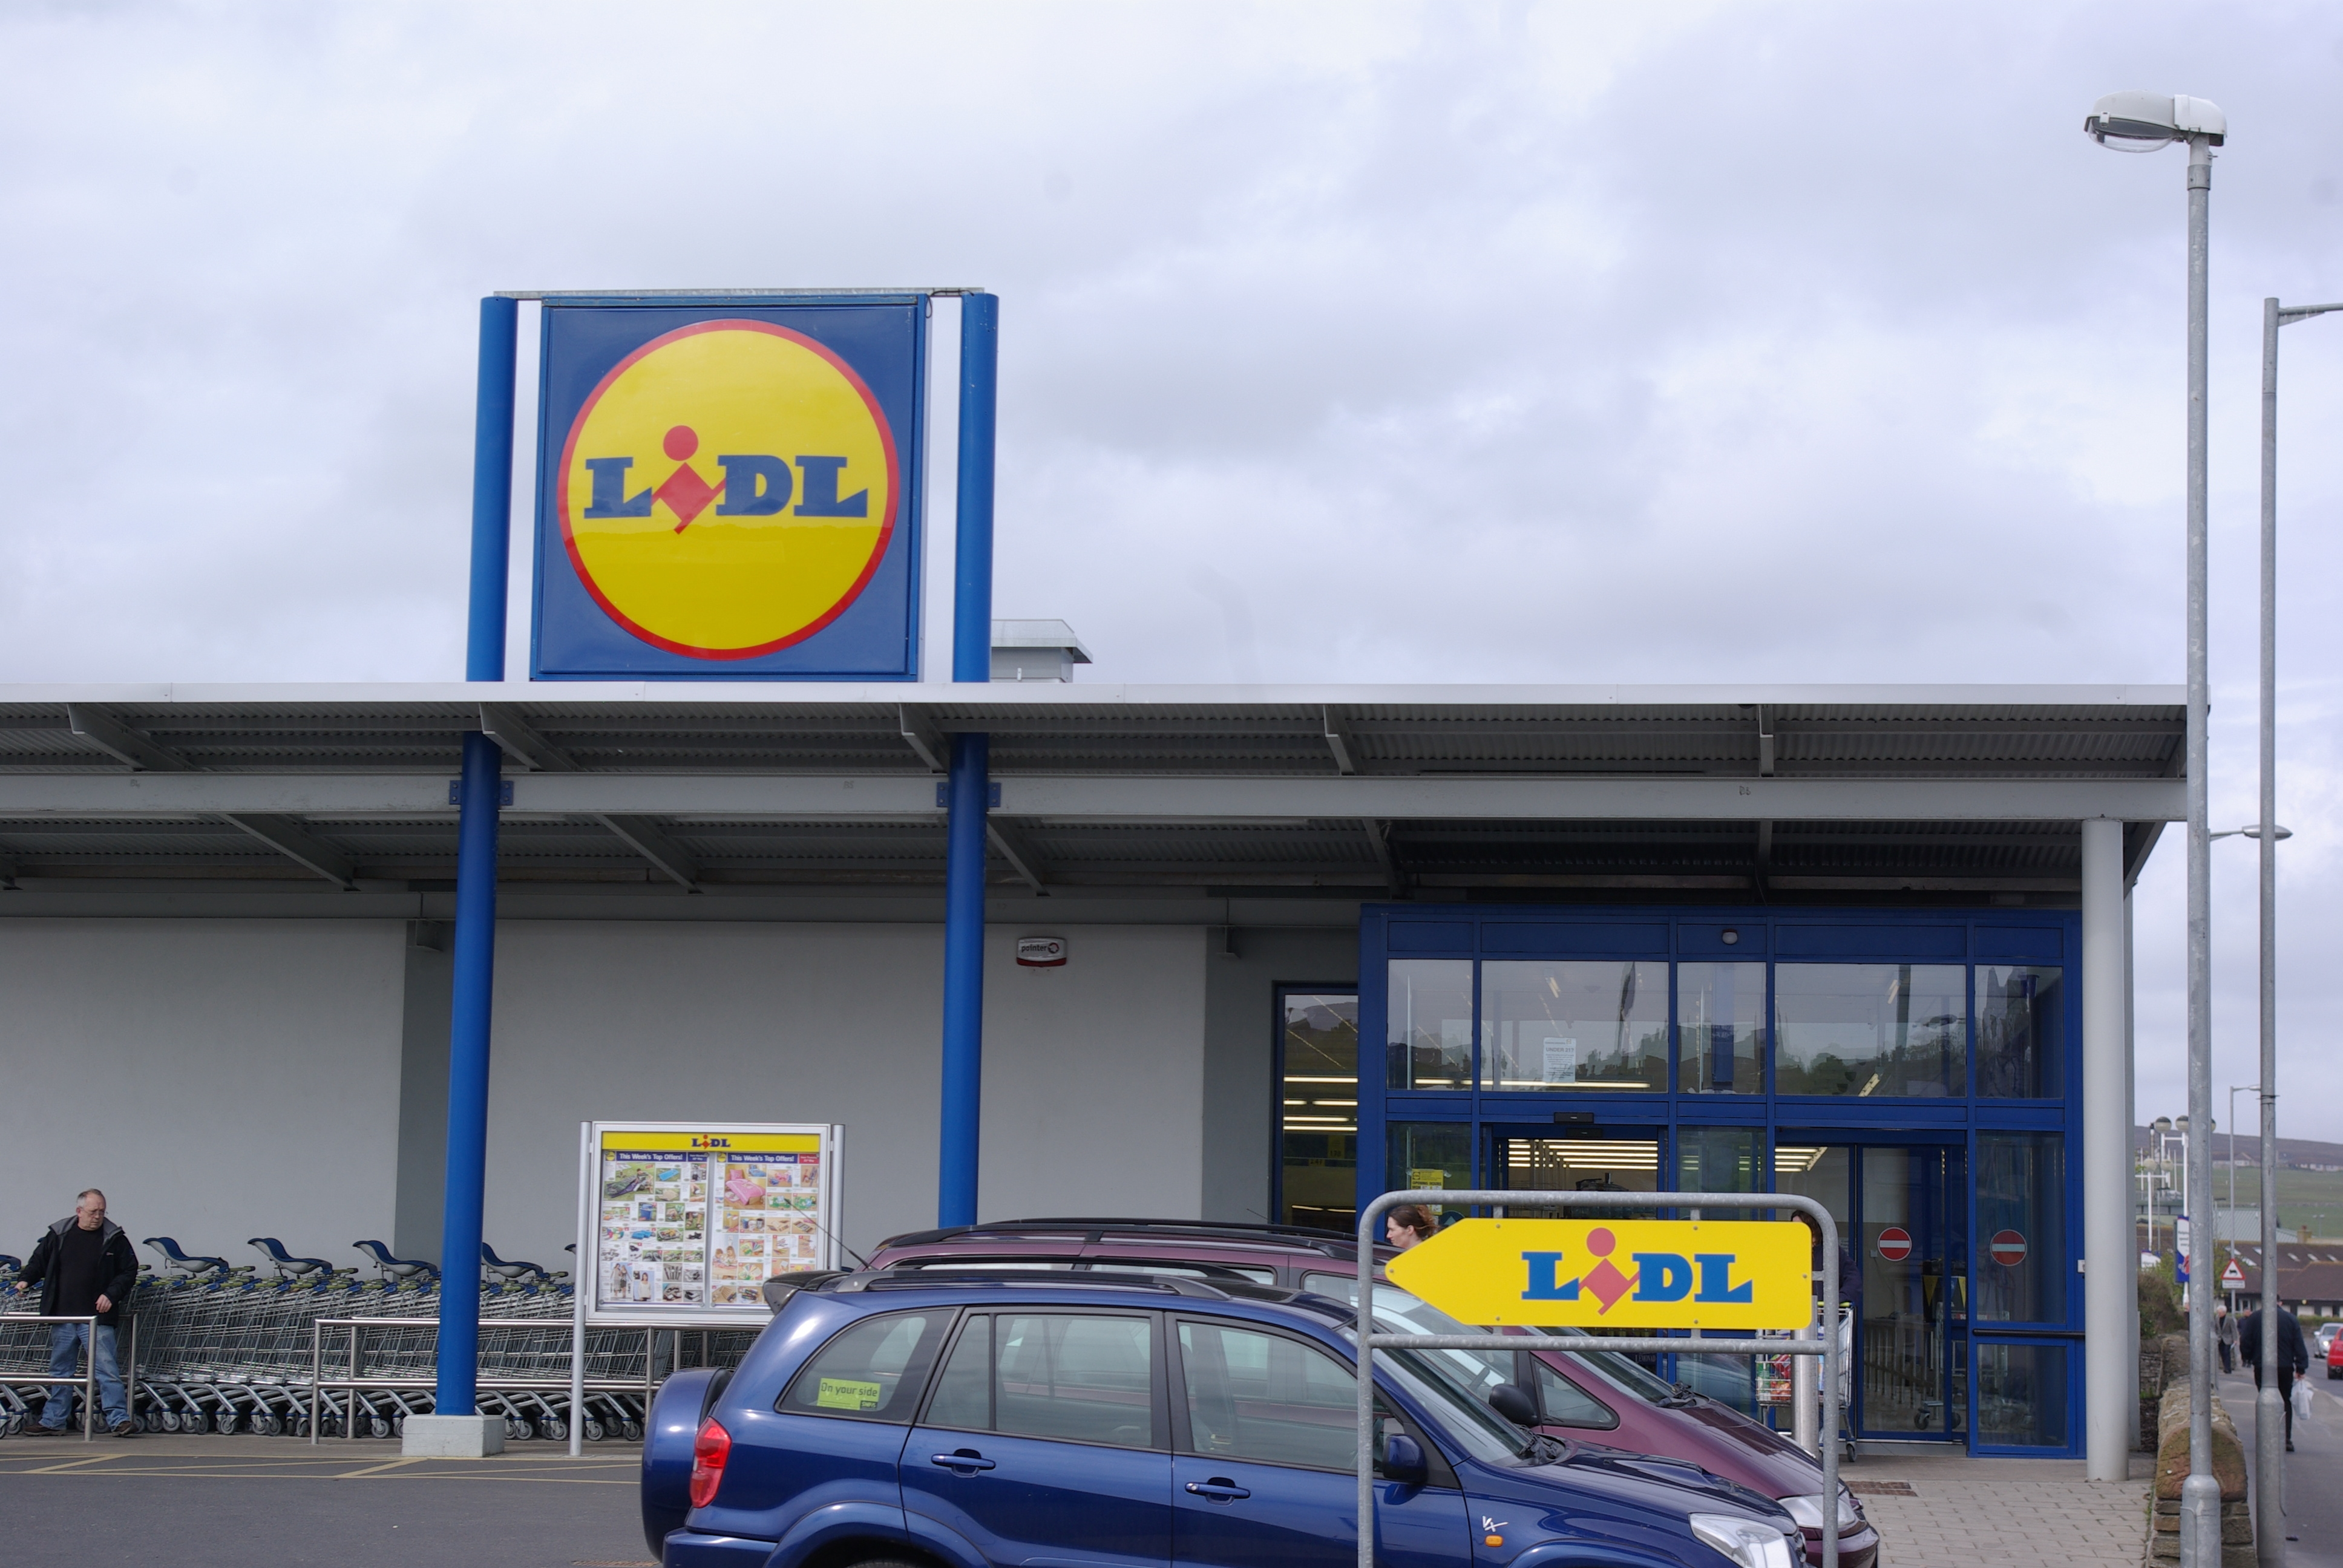 organizational lidl Samsung company organizational structure - download as word doc (doc / docx), pdf file (pdf), text file (txt) or read online.